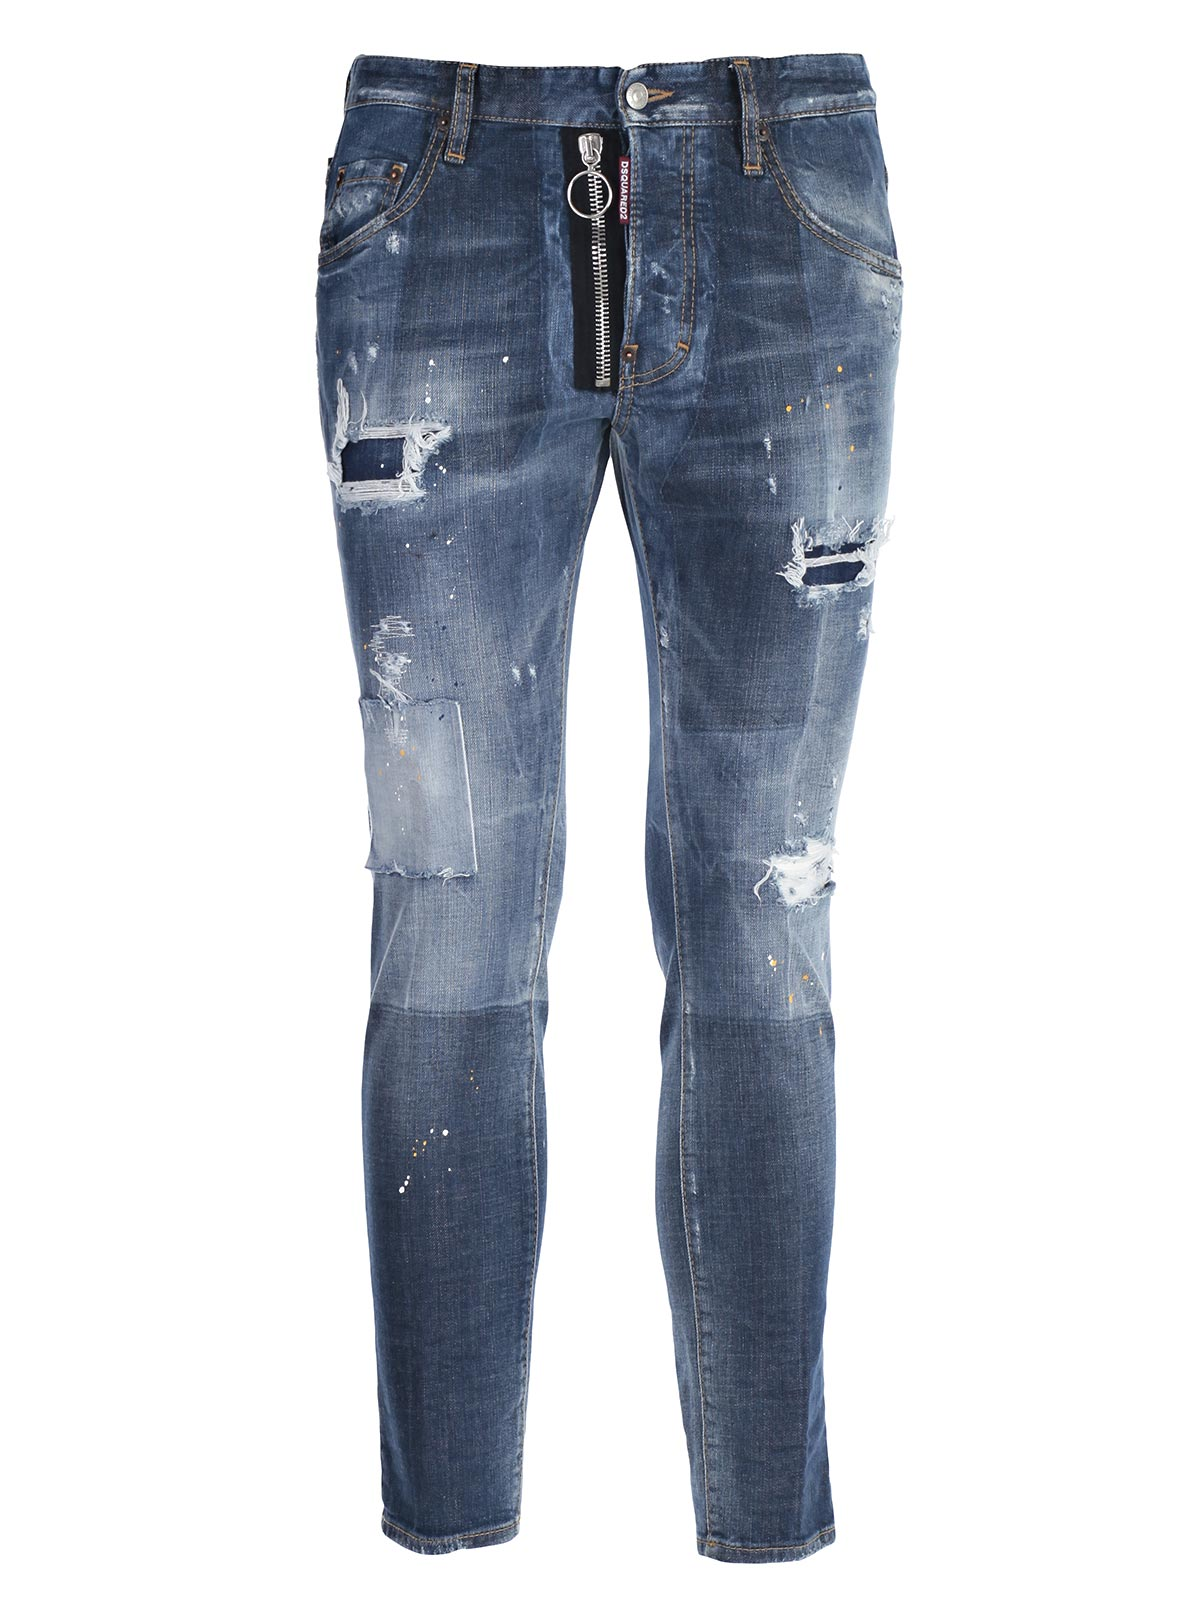 Picture of DSQUARED2 JEANS JEANS SKATER STRAPPI RATTOPPATI - ZIP A VISTA